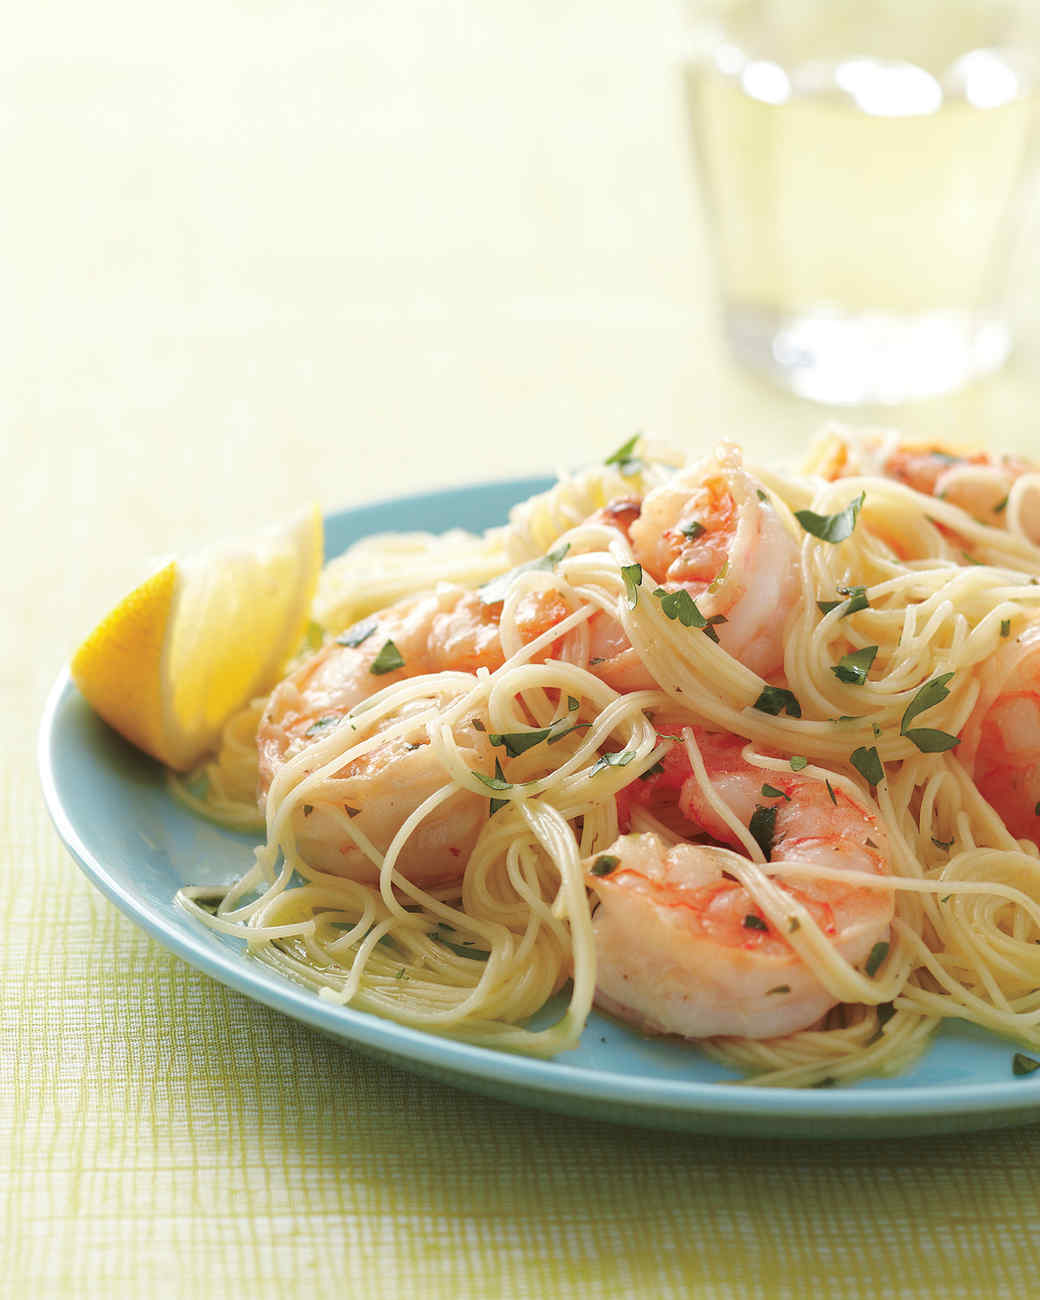 Shrimp and prawn pasta recipes martha stewart for Prawn and spaghetti recipe